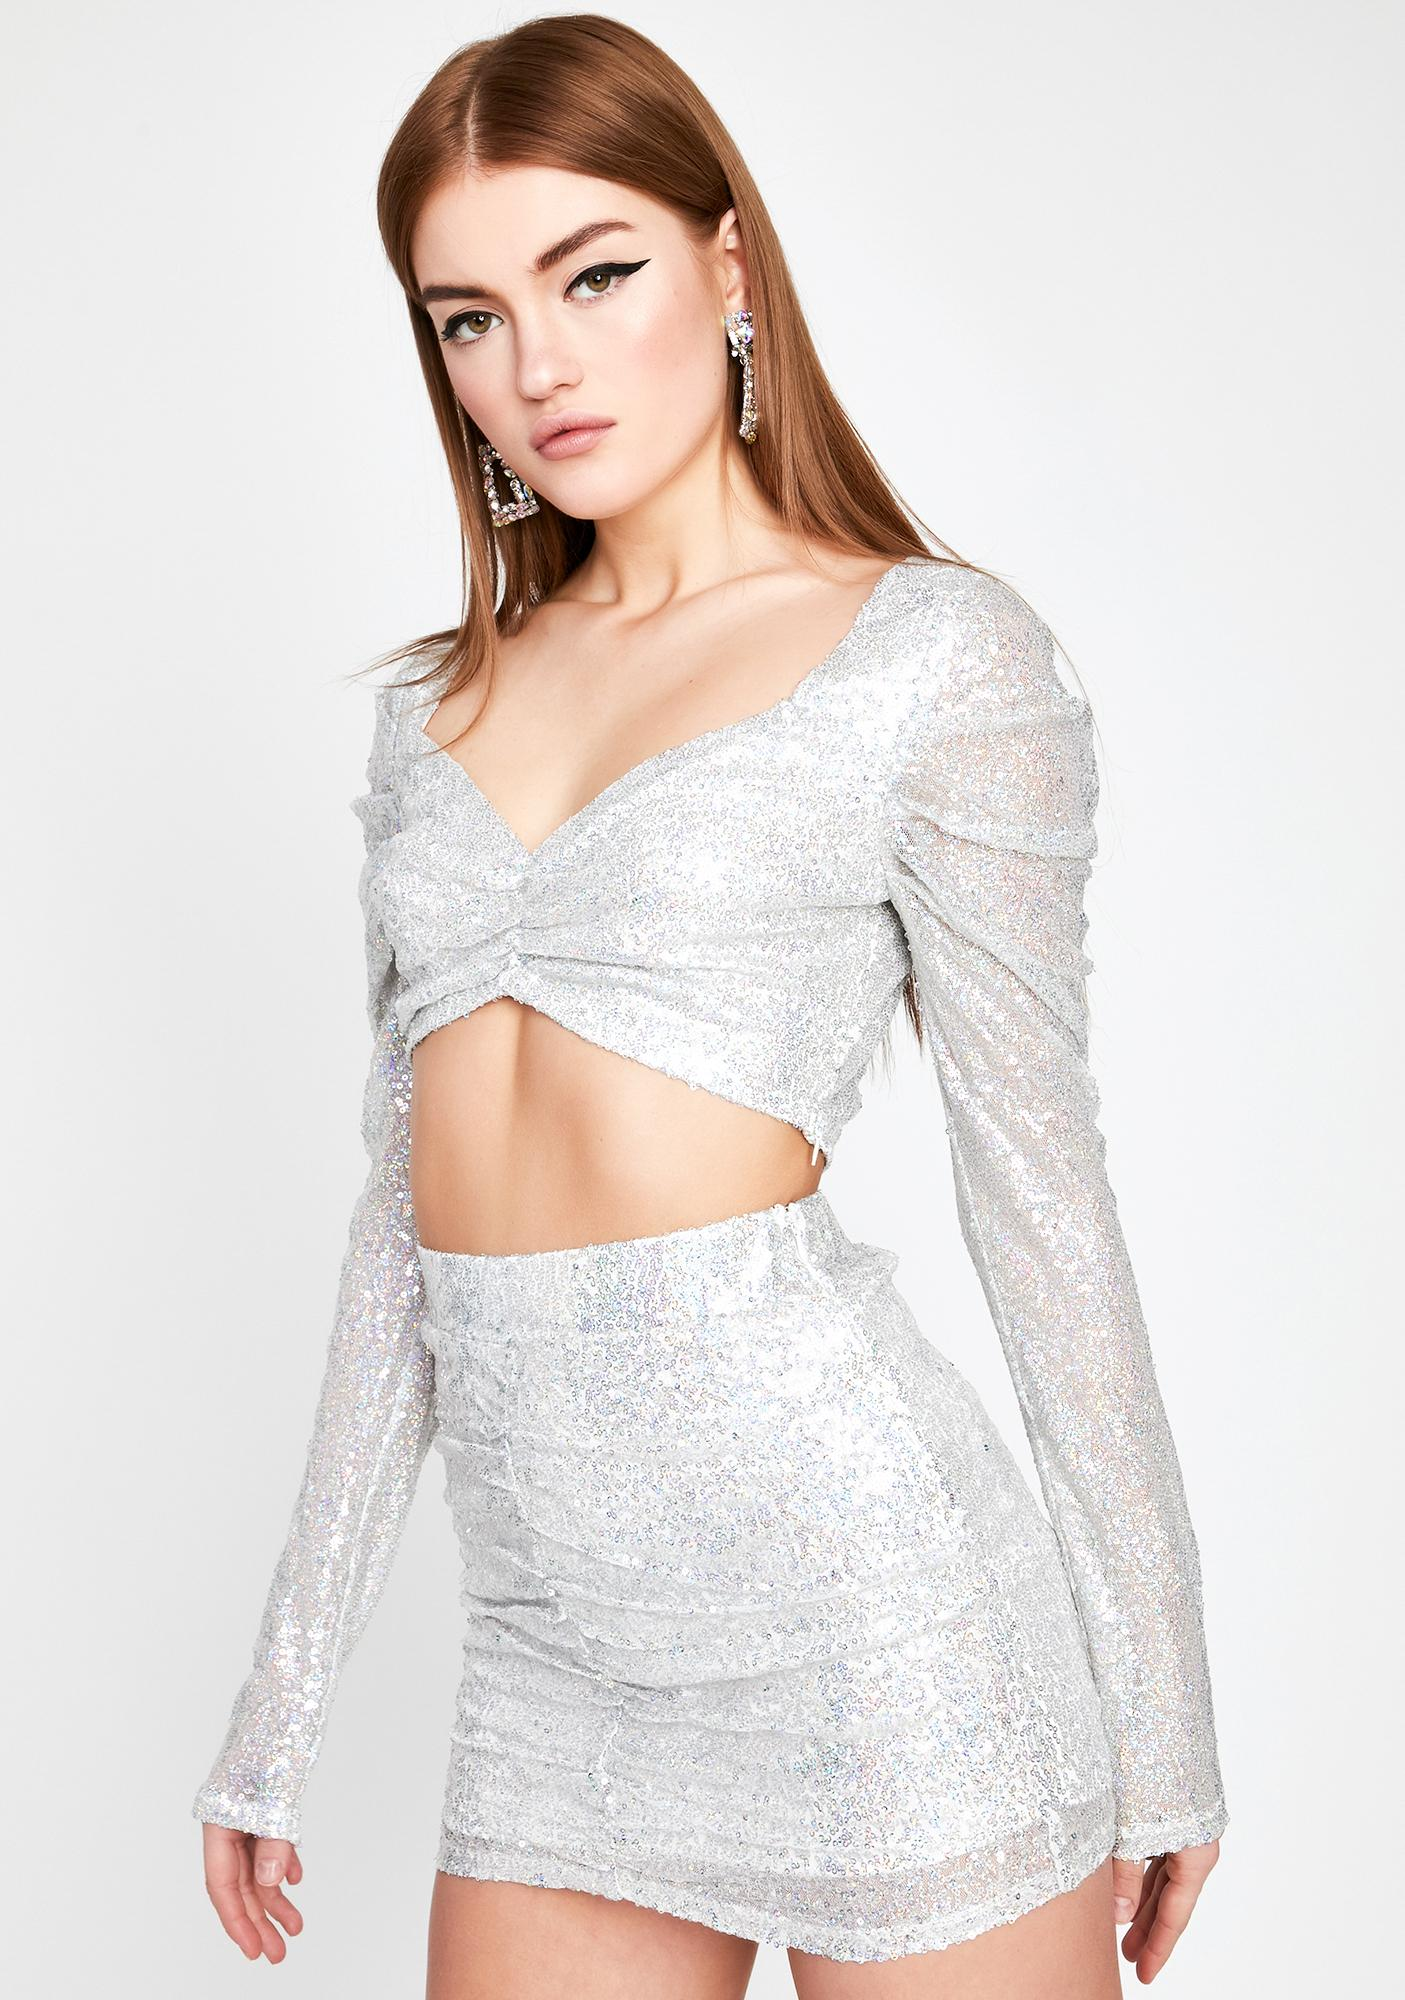 Unlimited Champagne Sequin Top